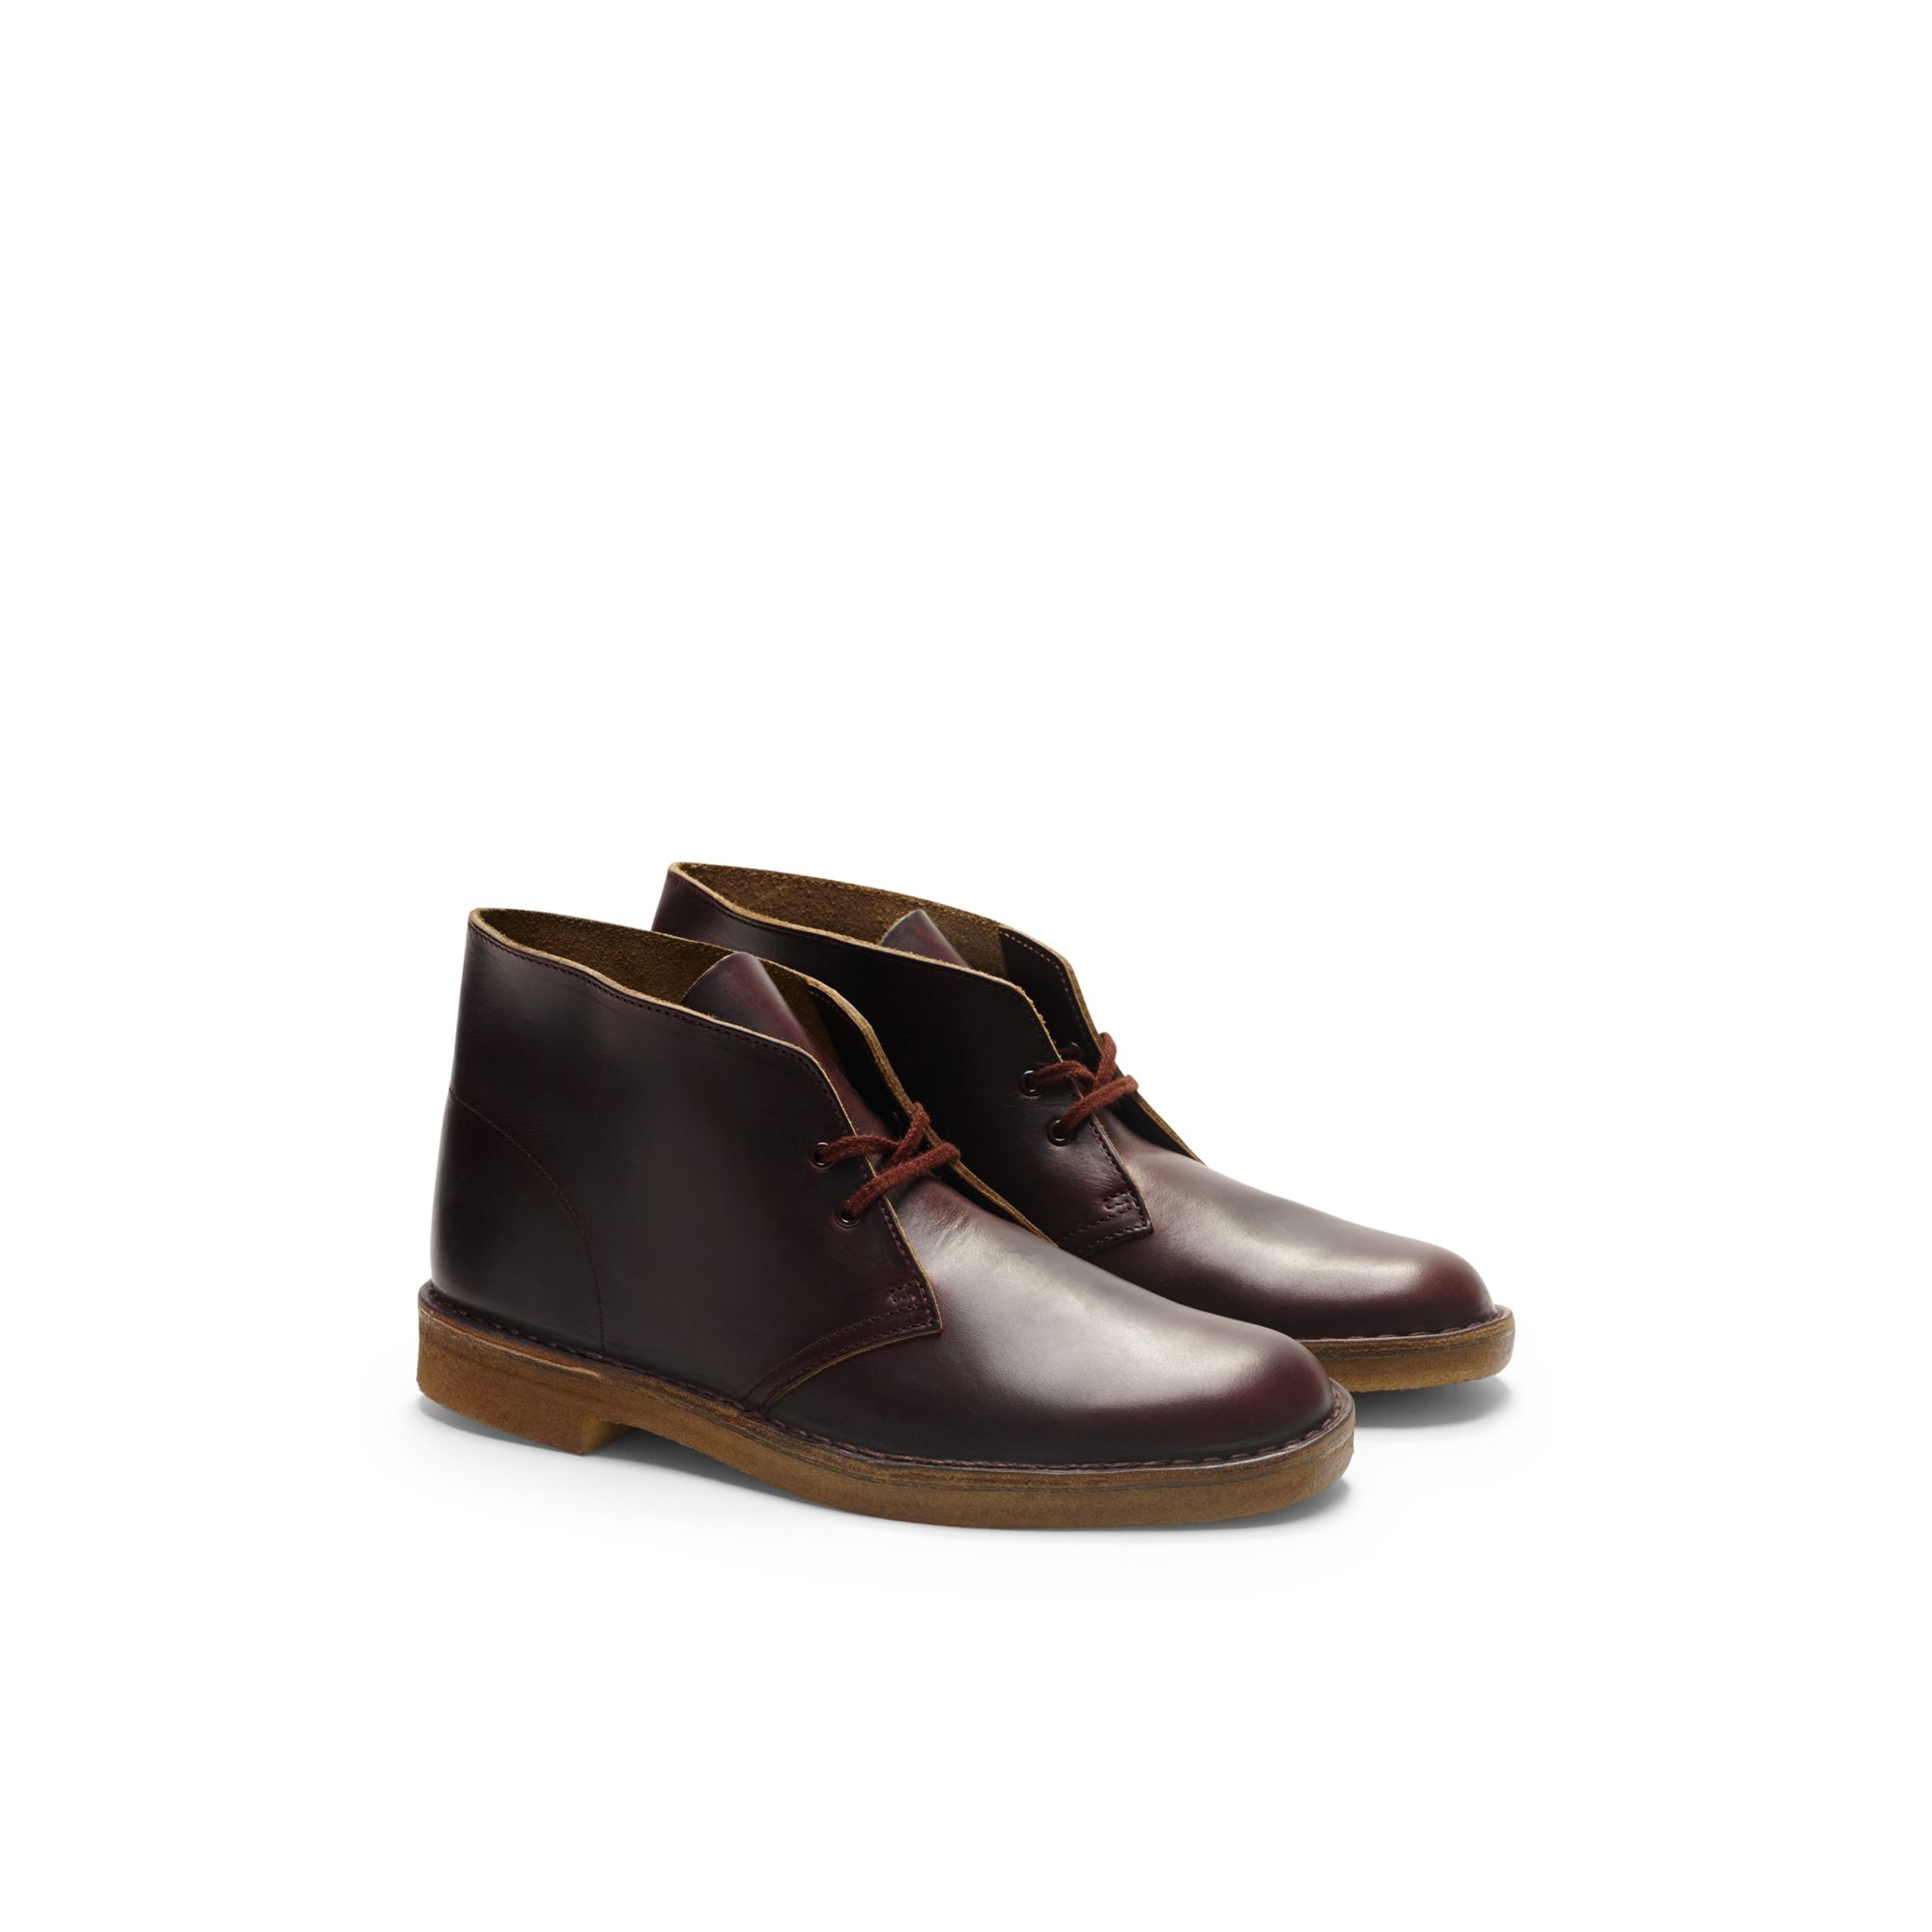 Clarks Burgundy Suede Shoes